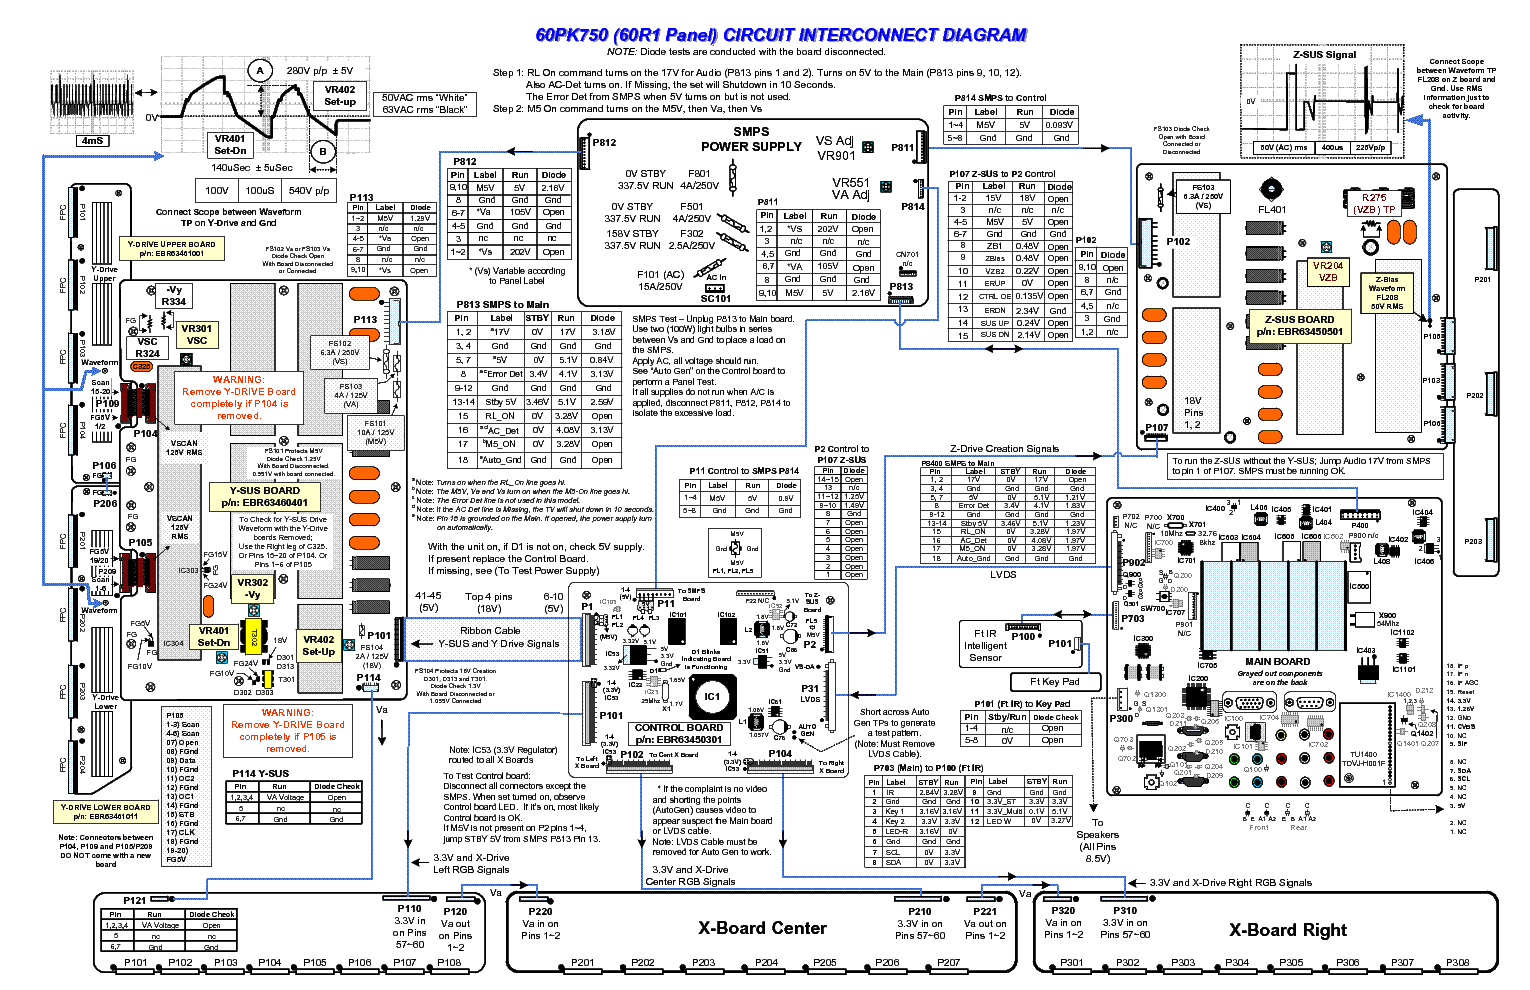 lg_60pk750_chassis_pu02a_panel_60r1_circuit_interconnect_diagram.pdf_1 100 [ berner air curtain troubleshooting ] control board berner air curtain wiring diagram at gsmportal.co